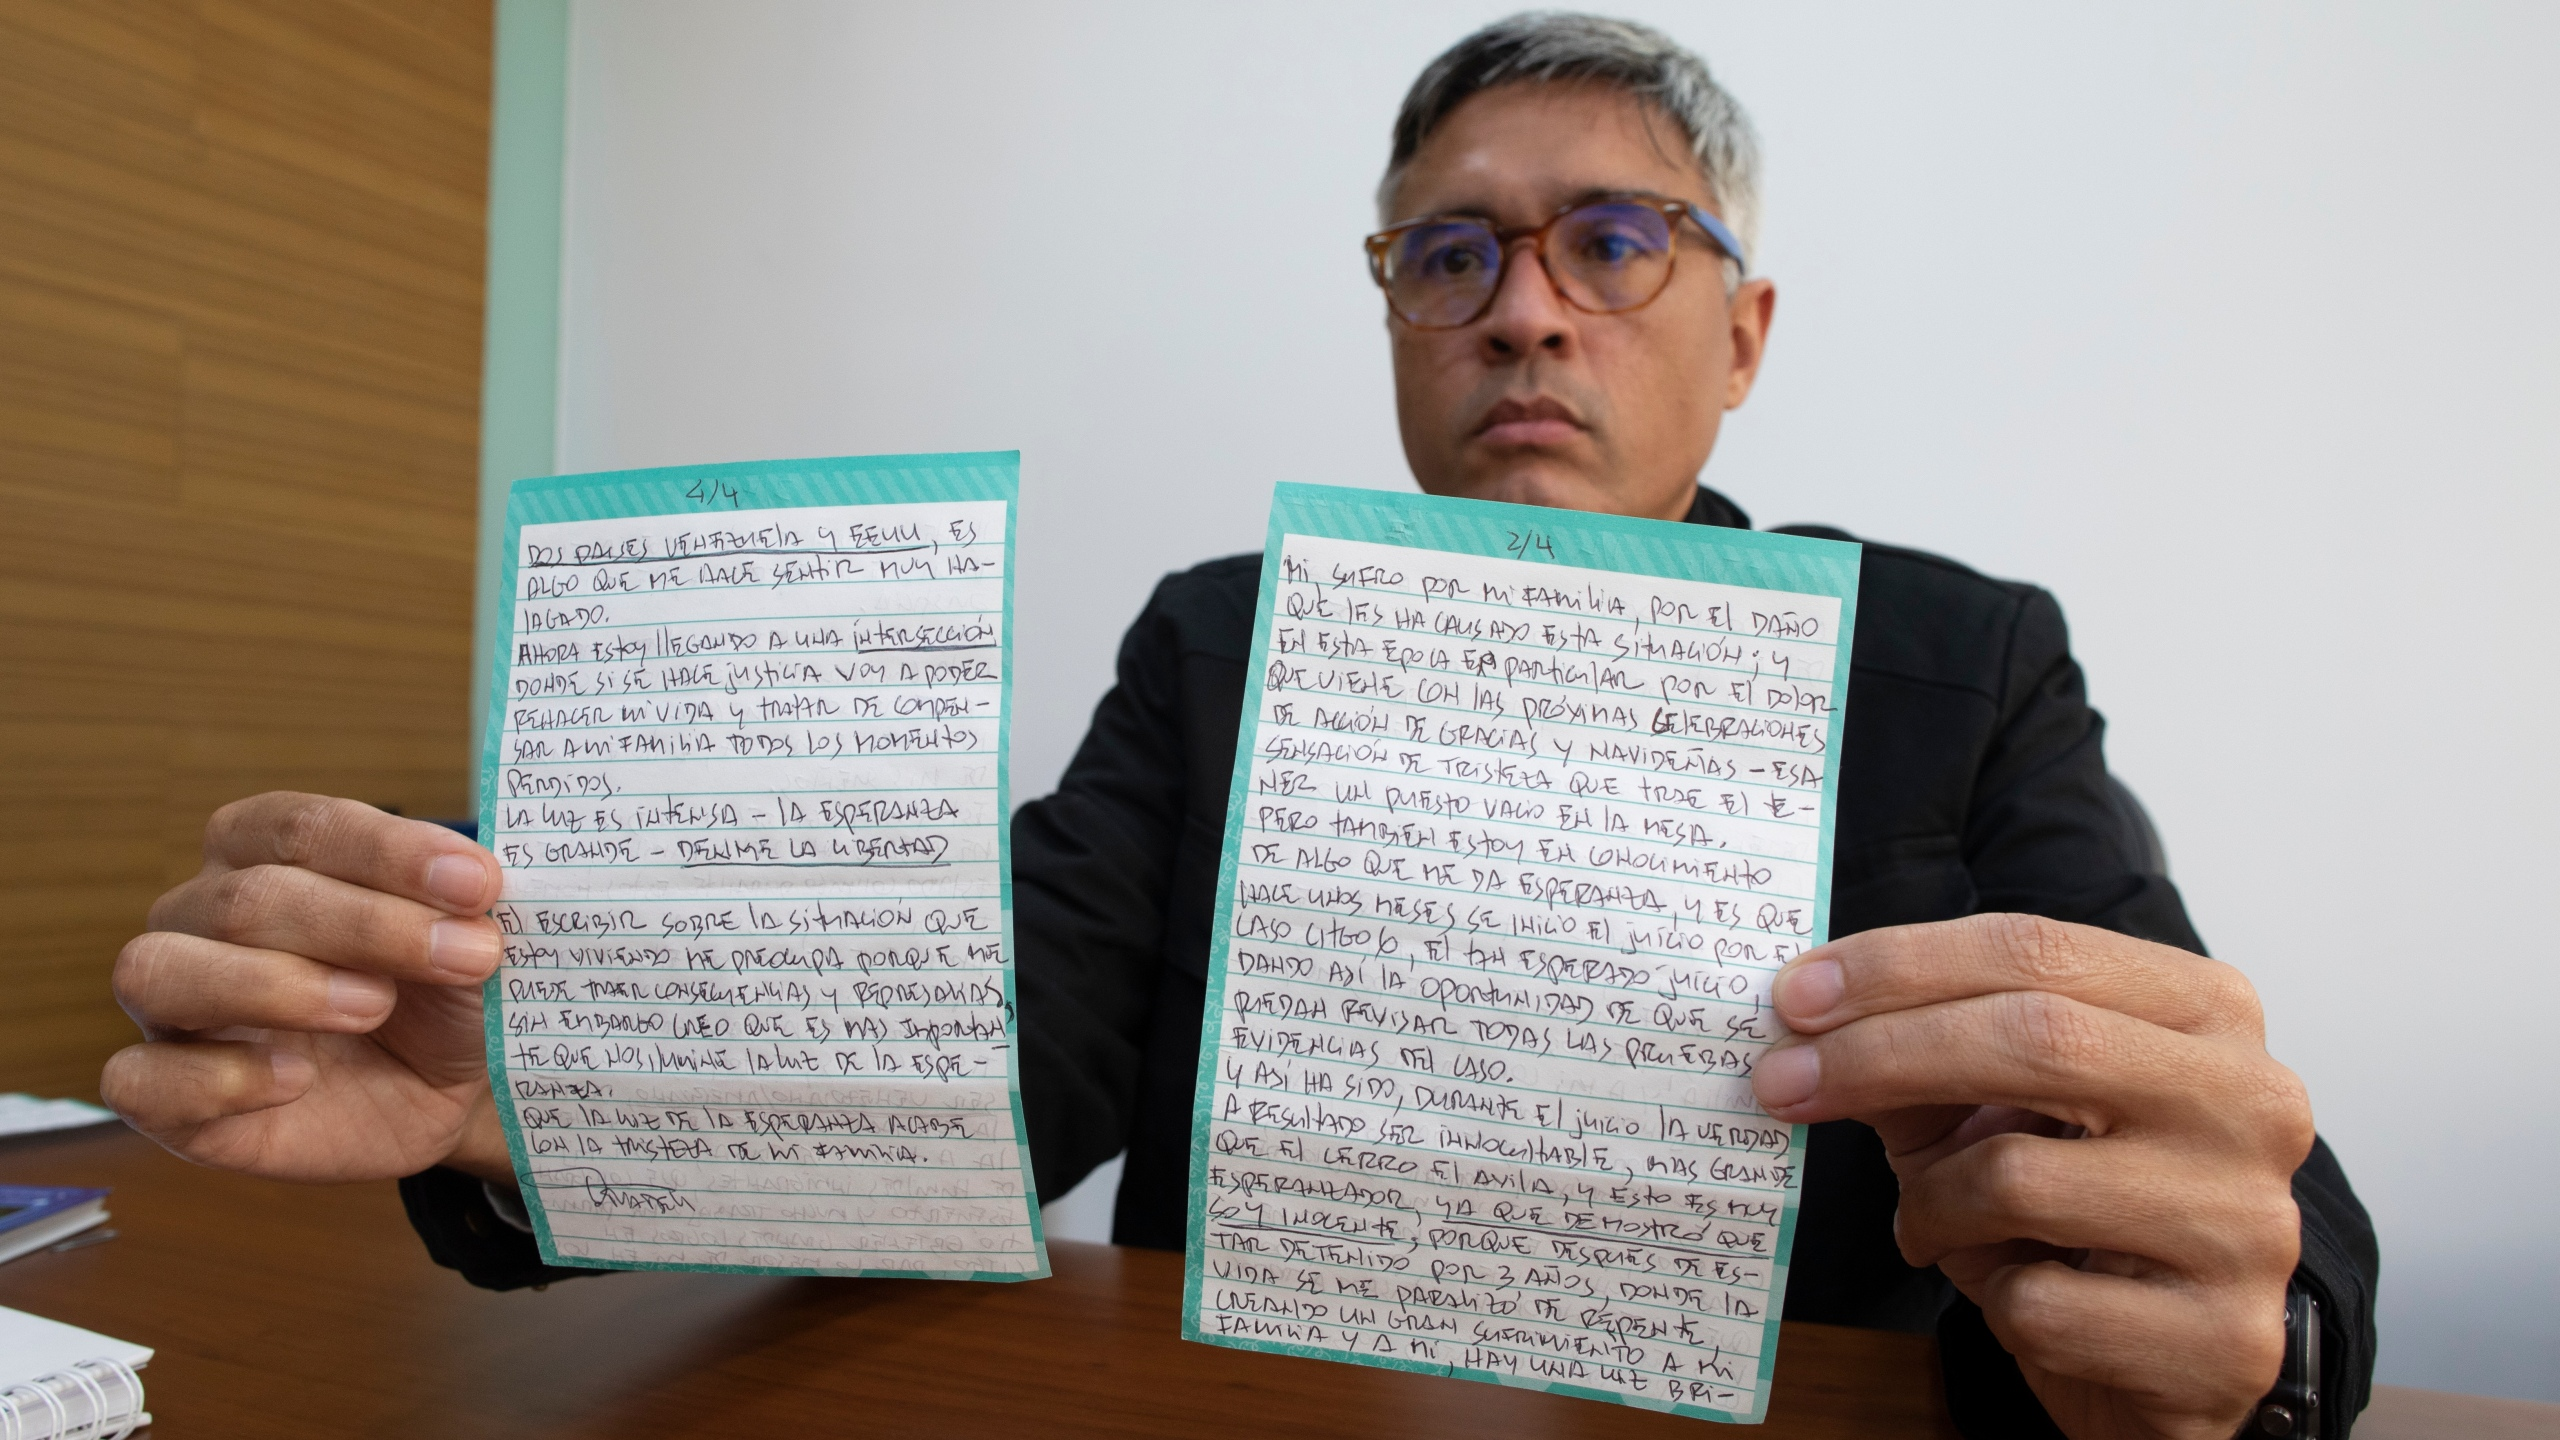 Jesus Loreto, an attorney representing Tomeu Vadell, one of six U.S. oil executives jailed for three years in Venezuela, shows a letter written by Vadell, in Caracas, Venezuela, Wednesday, Nov. 25, 2020. (Ariana Cubillos/AP Photo)